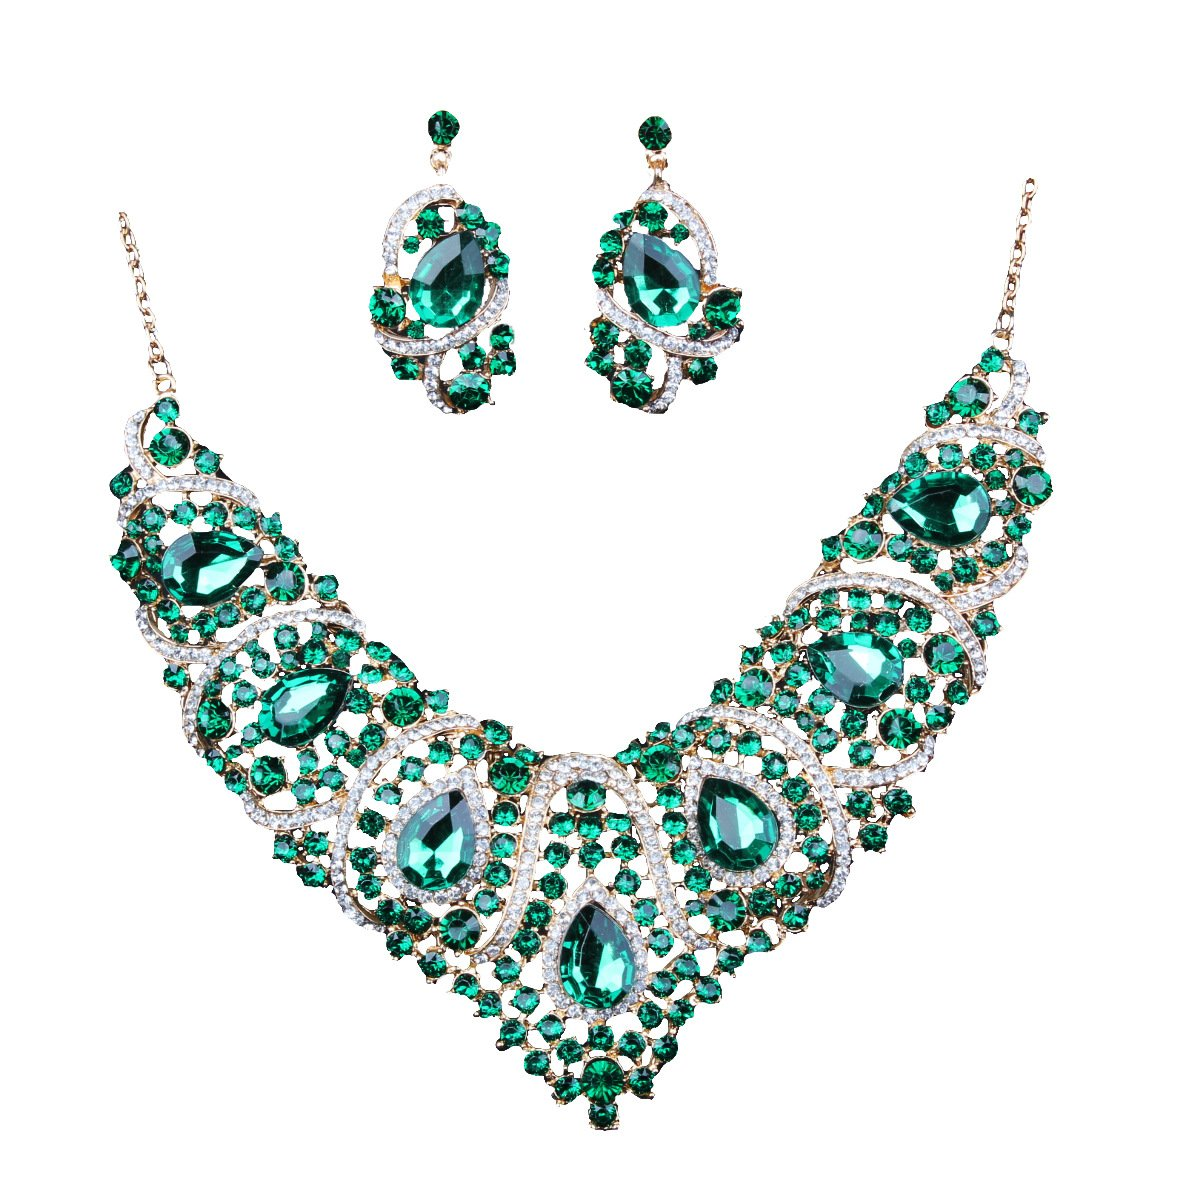 Diamond explosive necklace & earring set - monaveli - jewelry - Diamond explosive necklace & earring set - mymonaveli.com